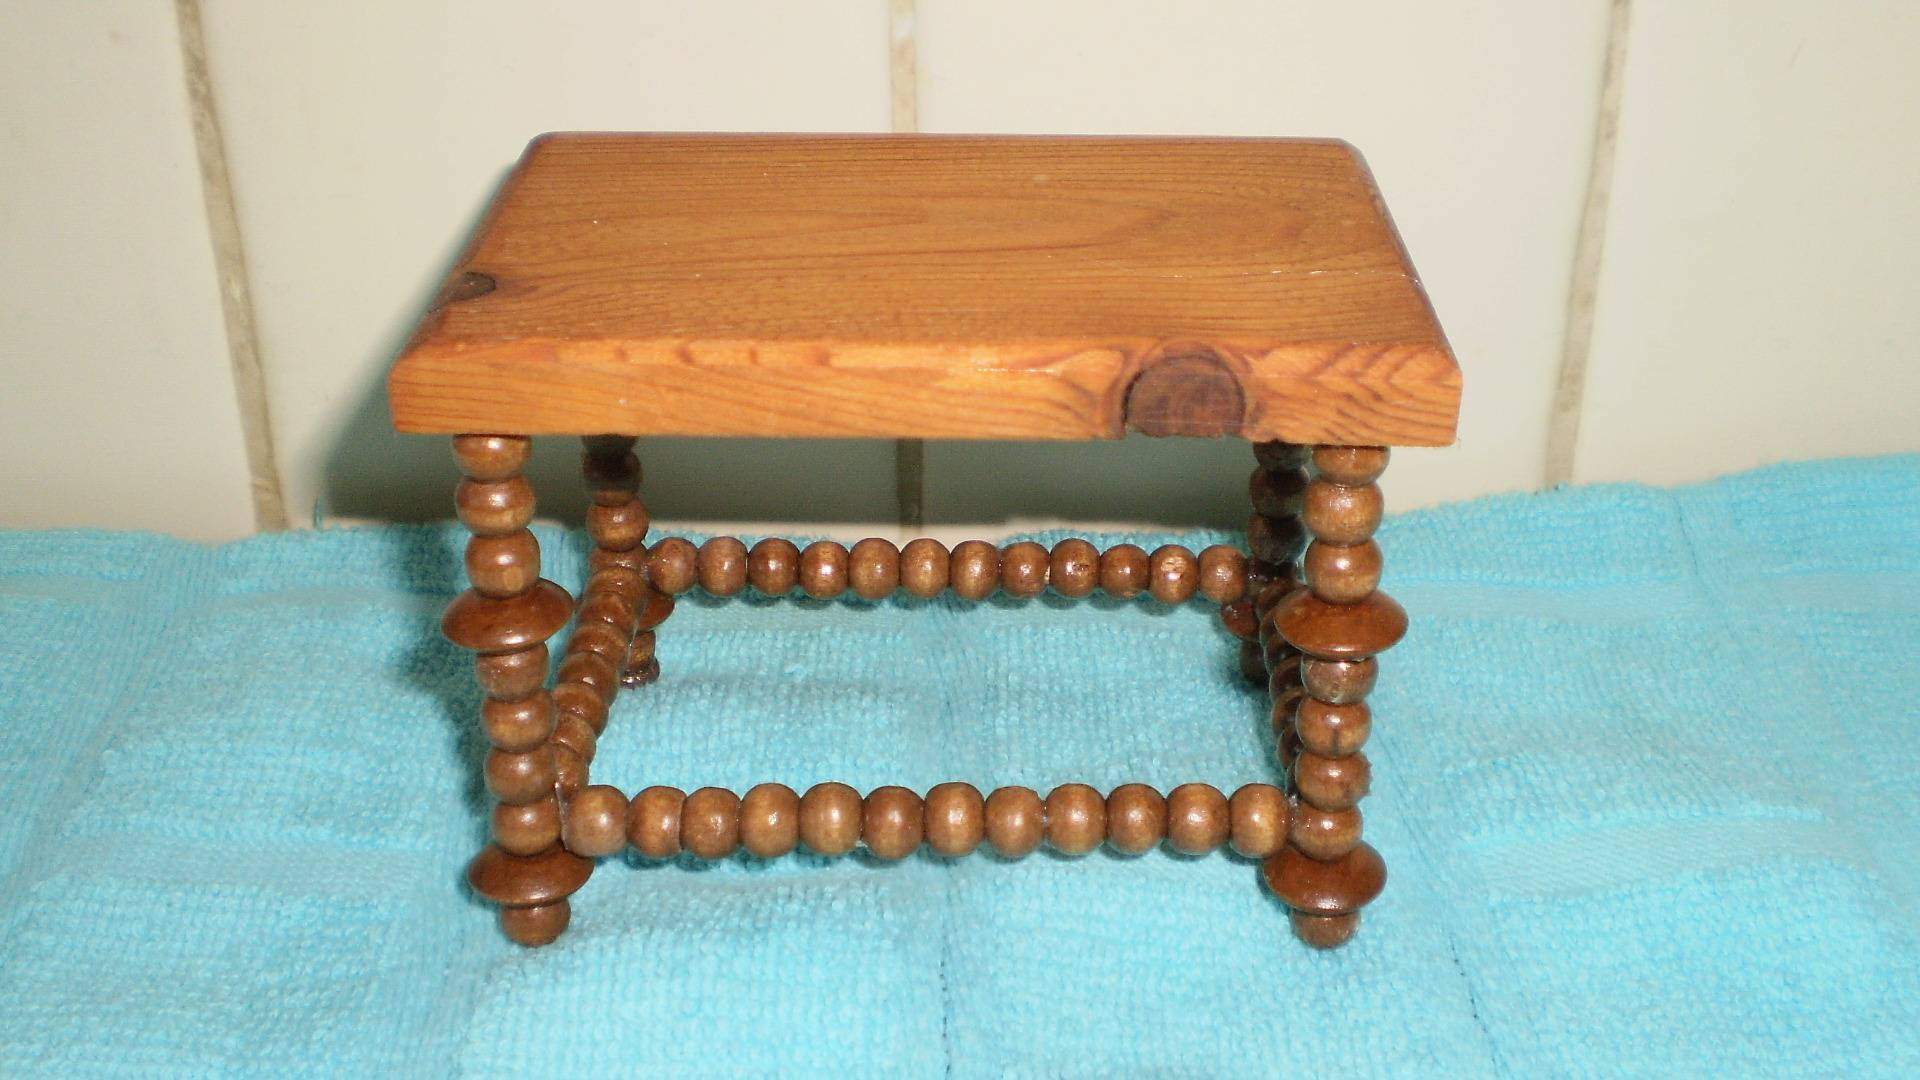 Table legs from wooden beads, top from a horrible table!